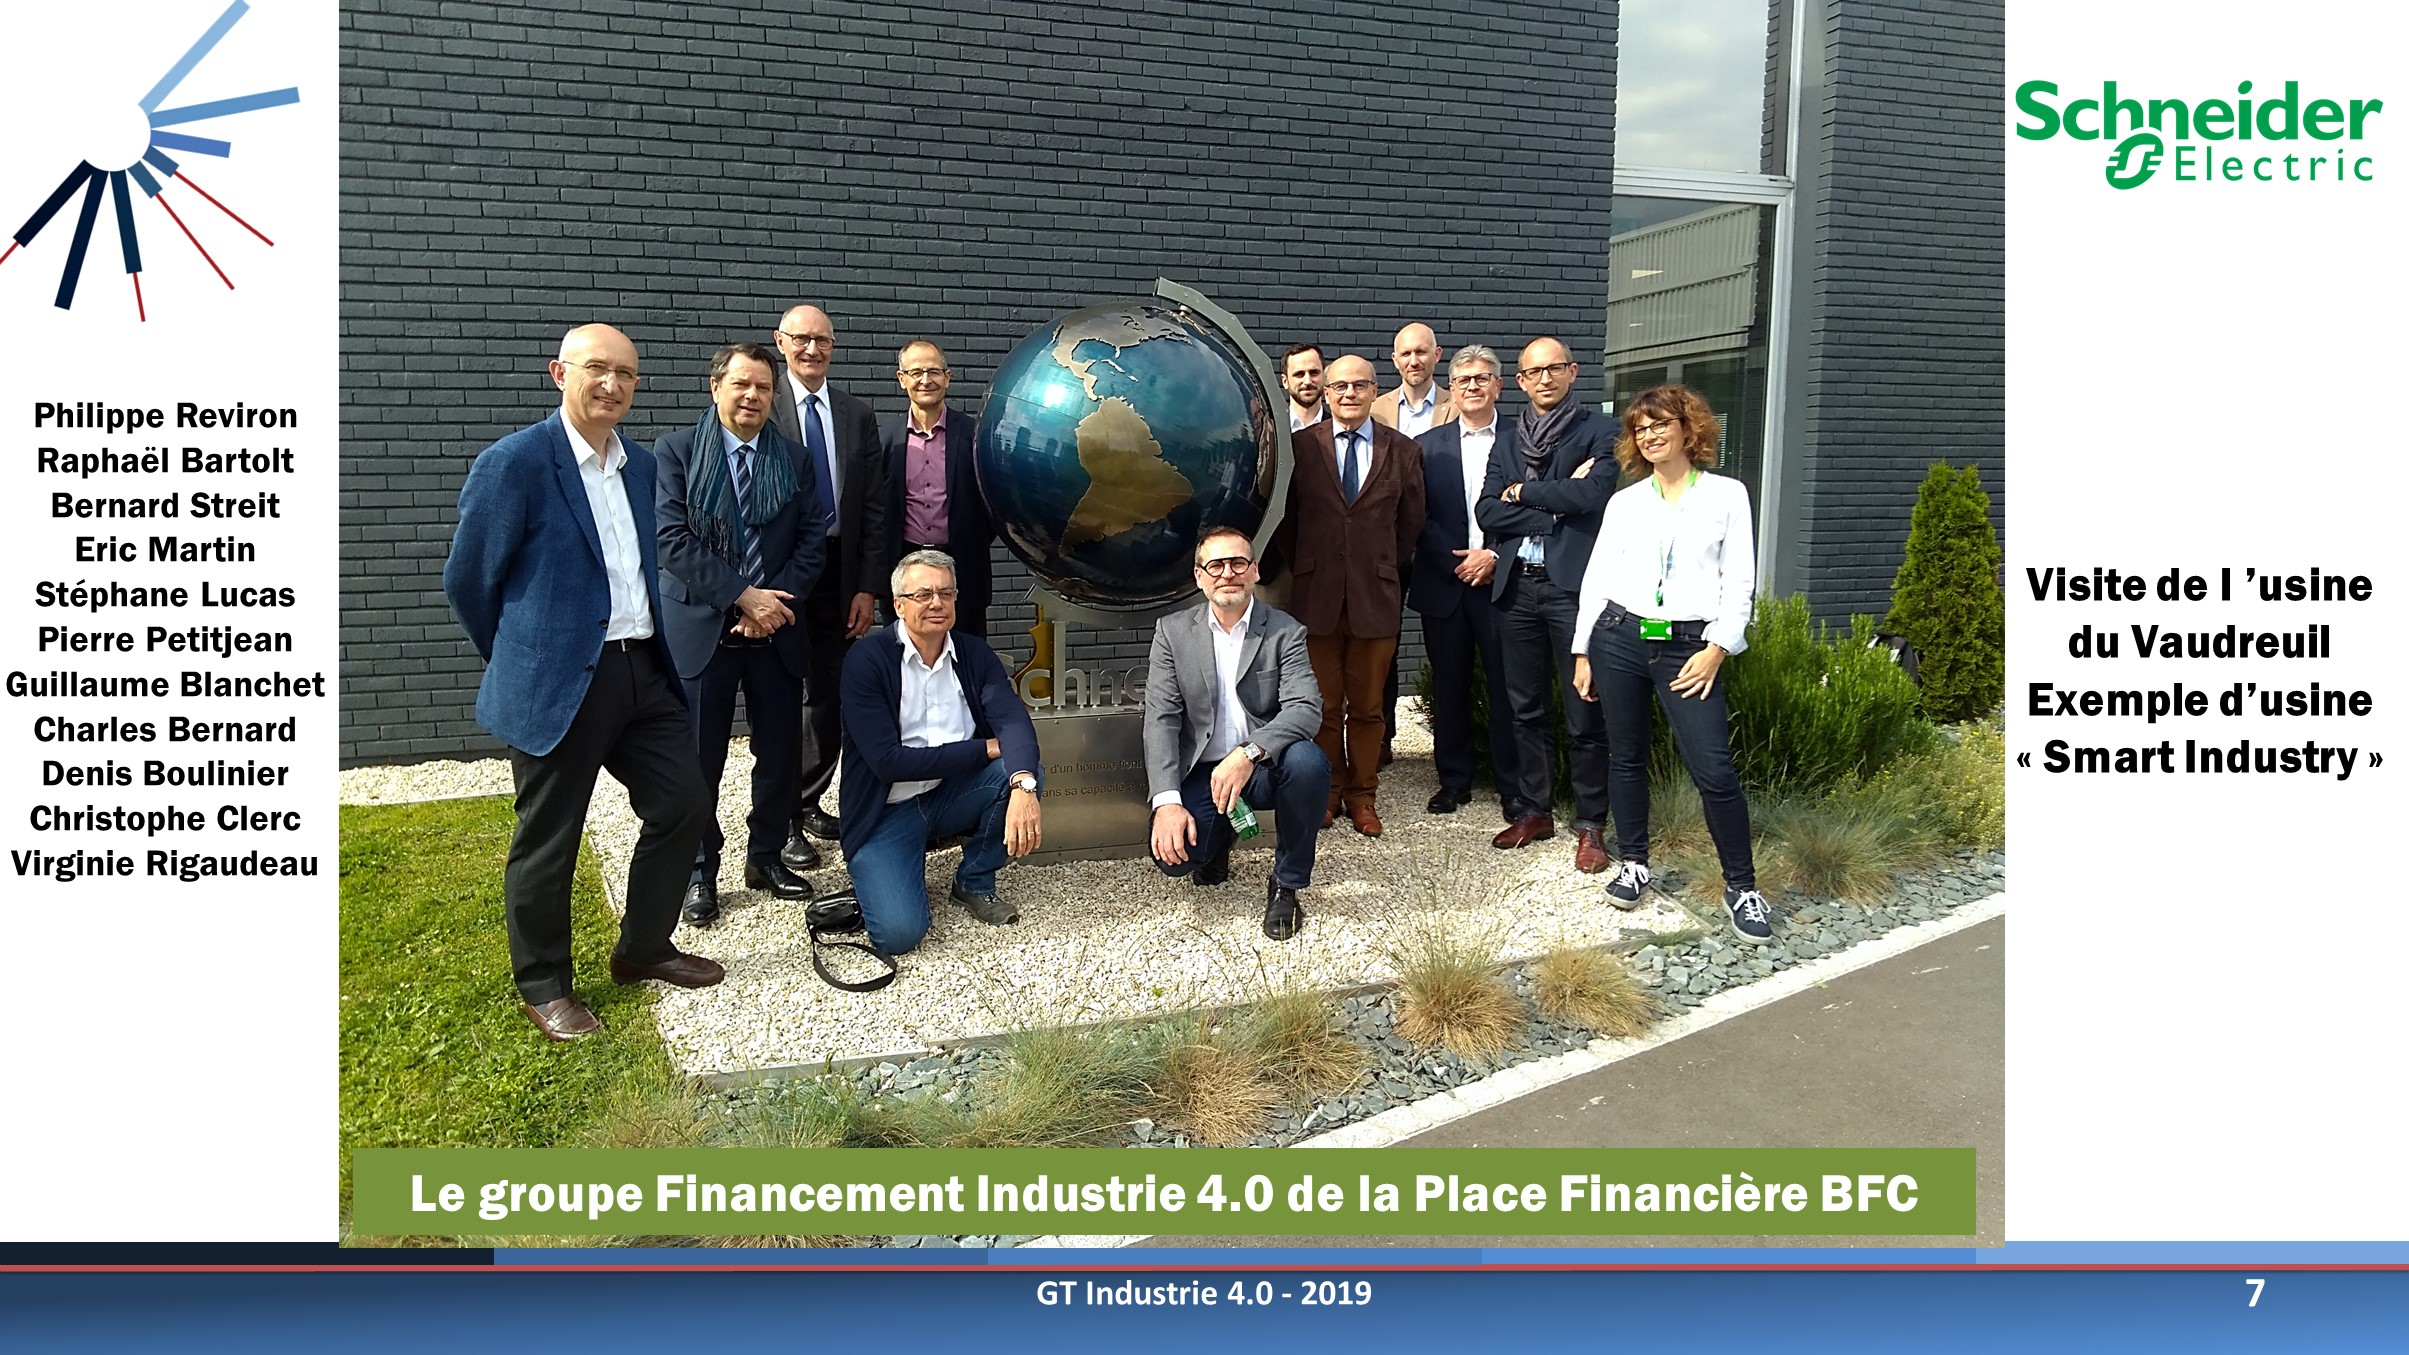 Financement Industrie 4.0 - Visite de Schneider Electric